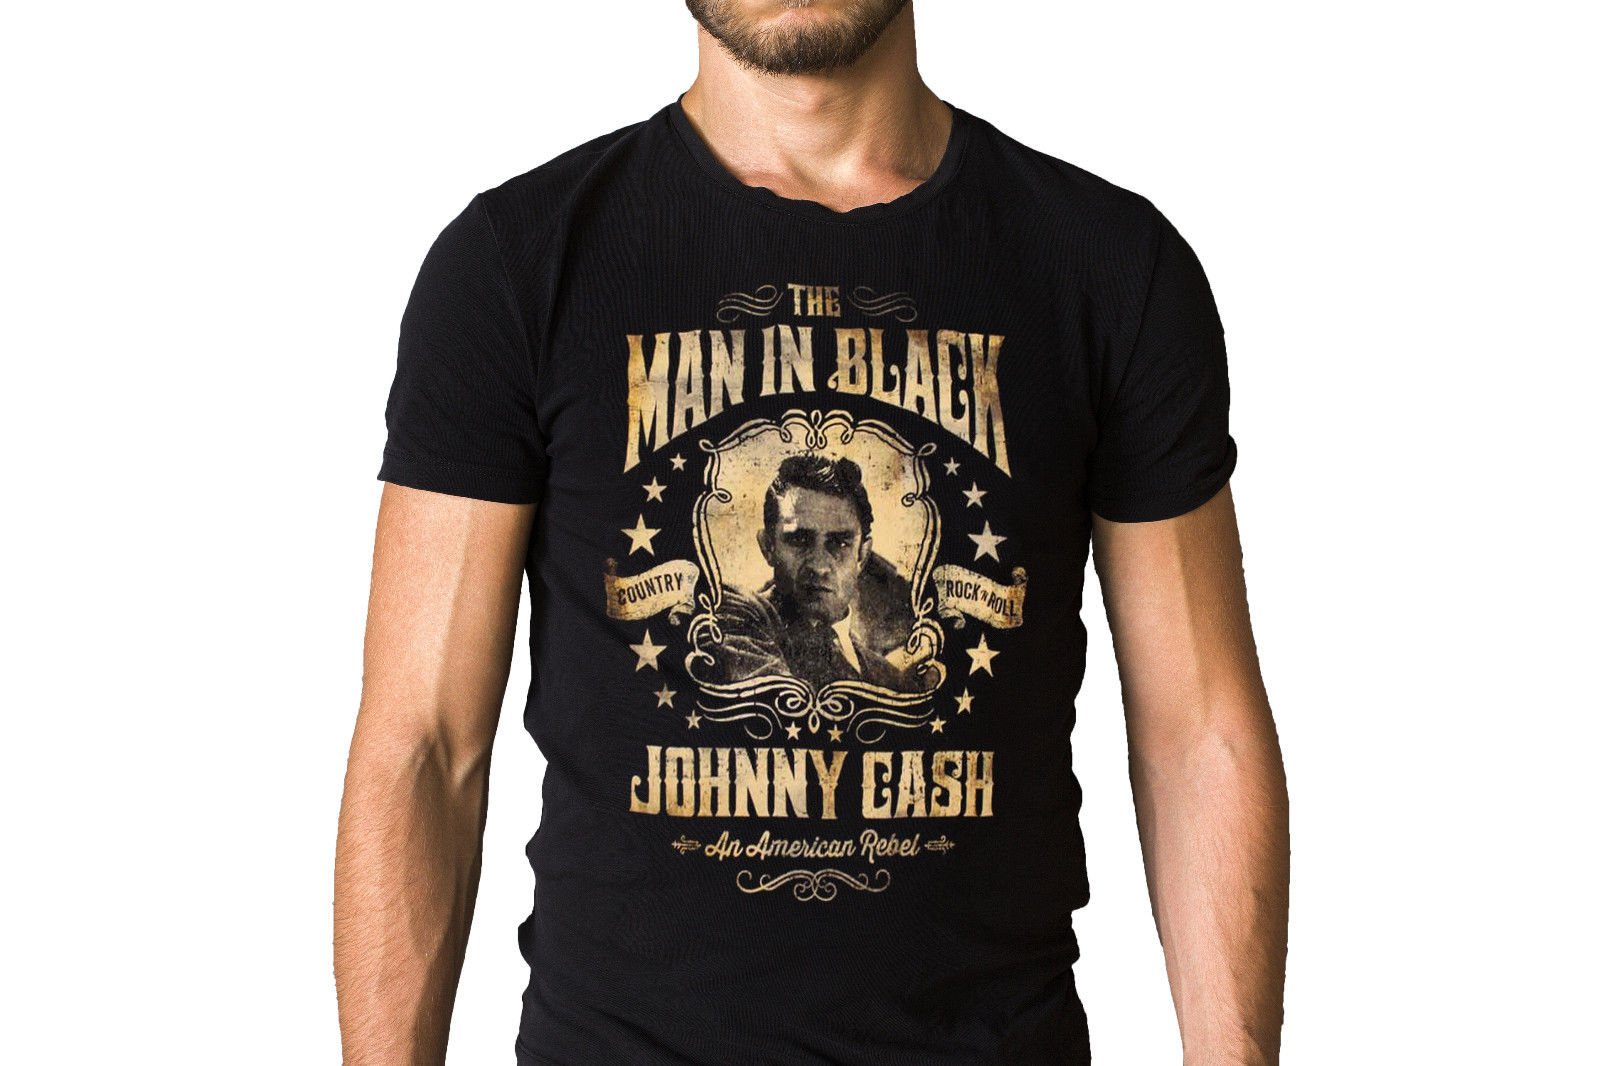 64cb047223148 Buy johnny cash tee shirts and get free shipping on AliExpress.com